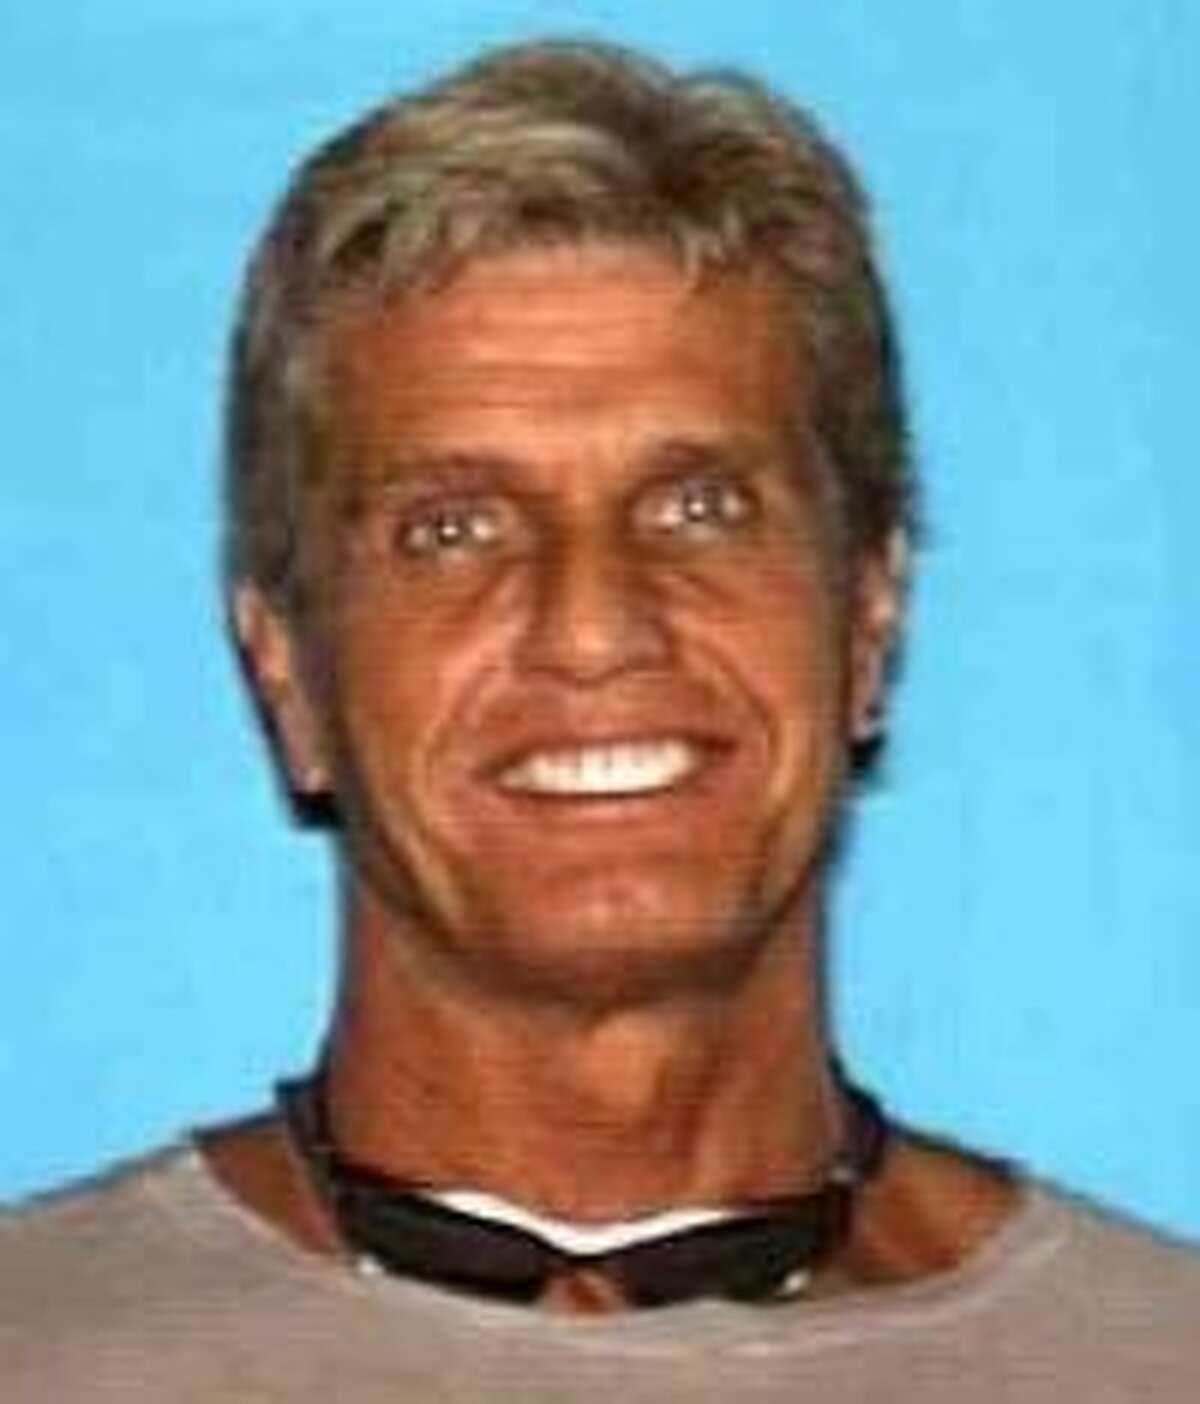 This photo released by the Los Angeles County Sheriffís Department shows missing 20th Century Fox executive Gavin Smith who was last seen May 1, 2012. The Los Angeles County coroner's office confirmed early Thursday Nov. 6, 2014 that the remains of Gavin Smith have been positively identified.